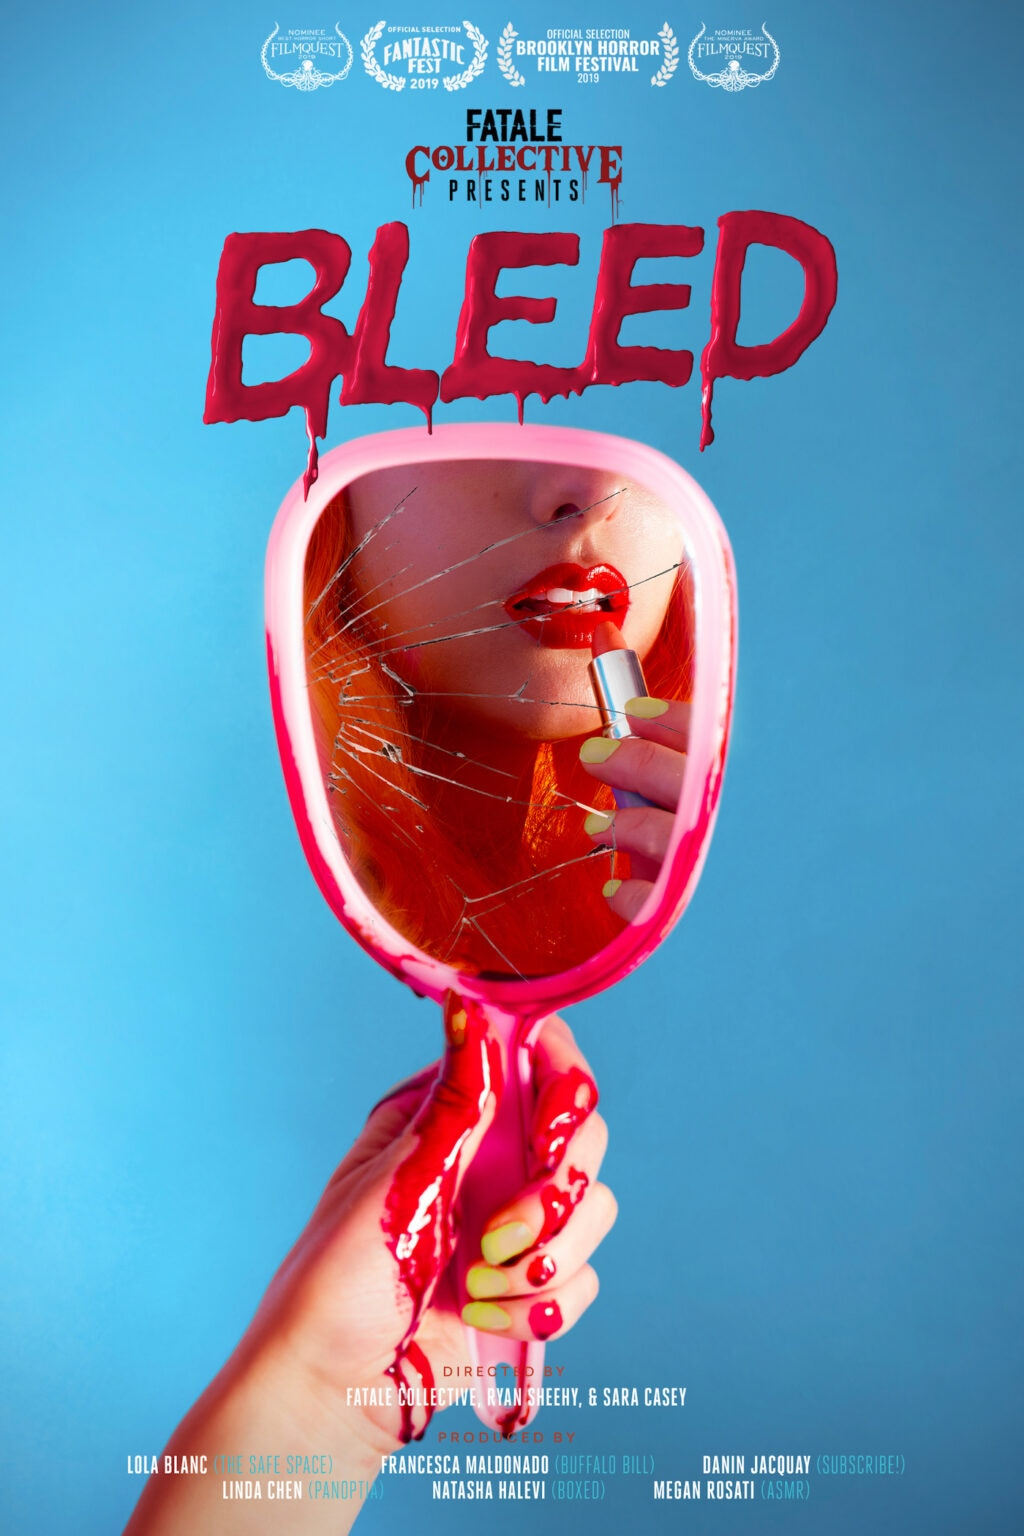 bleed Subscribe 1024x1536 - Fantastic Fest 2019 Exclusive: Character Posters For Shorts Anthology BLEED